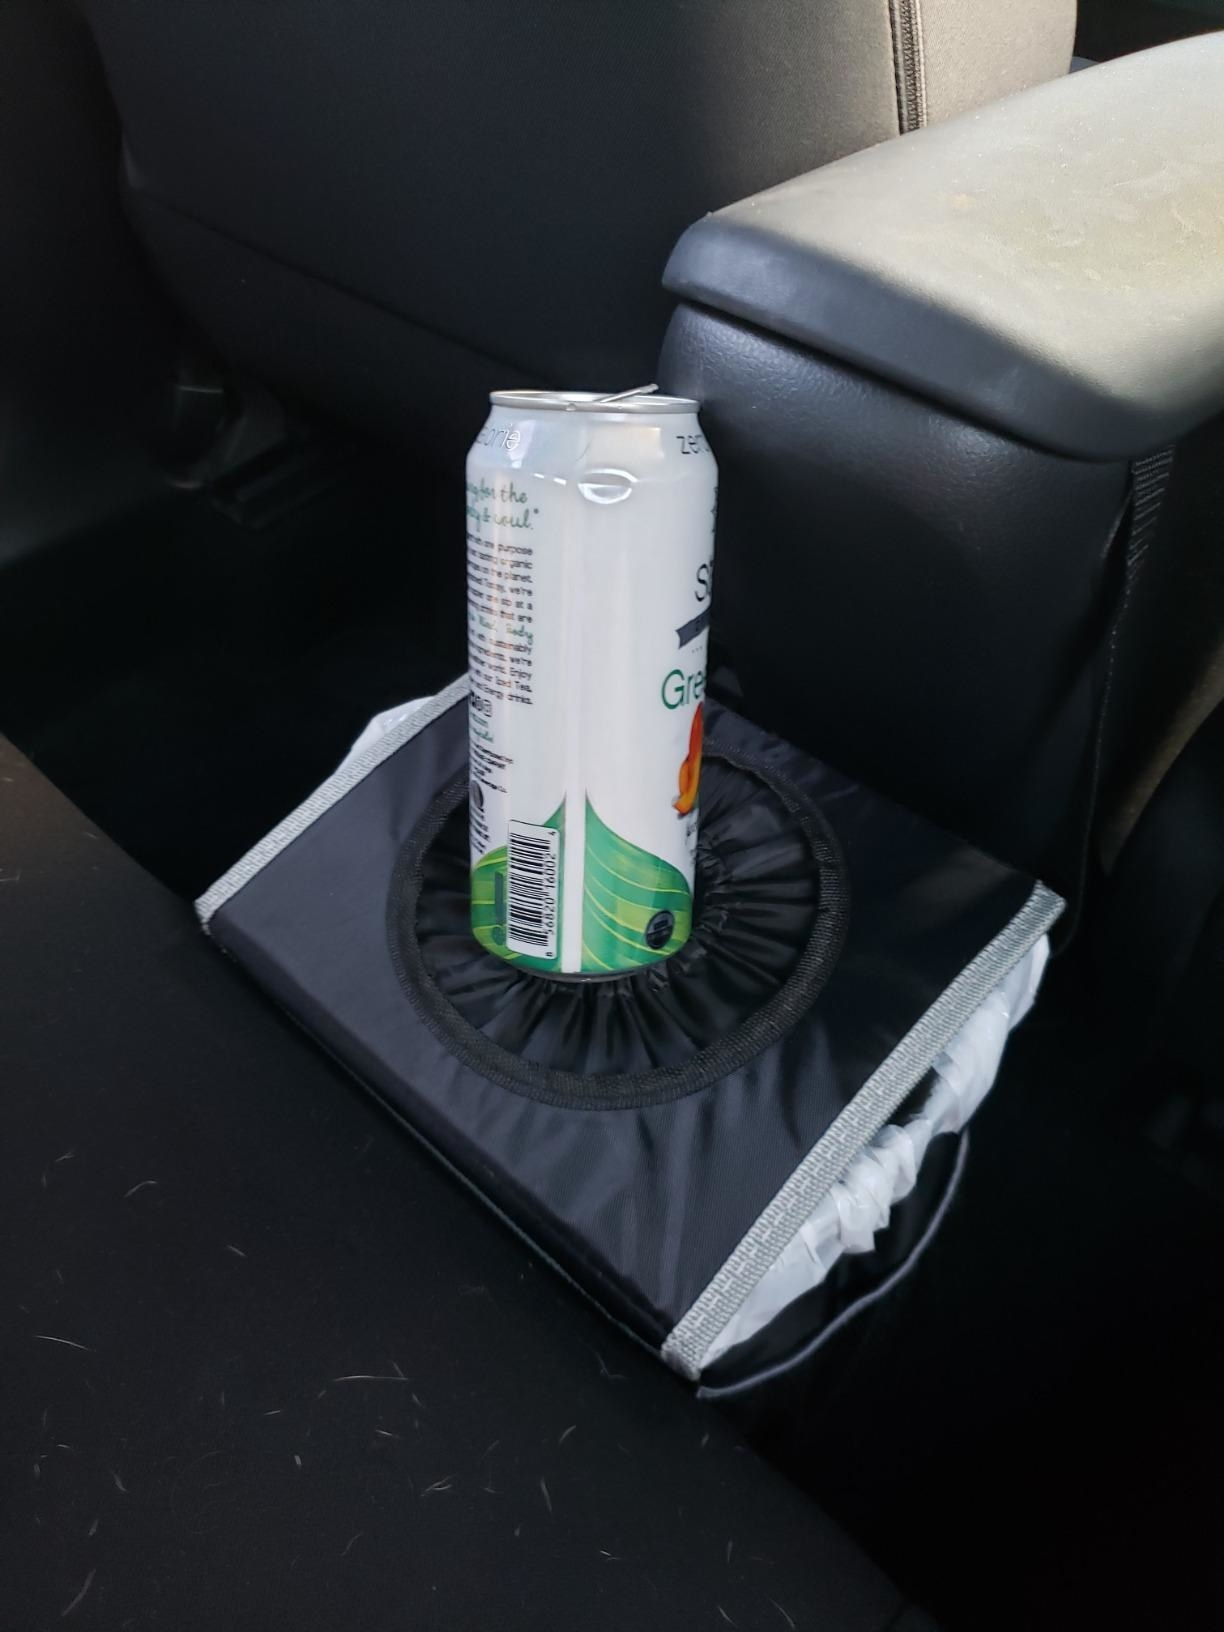 the trash can with a drink on top